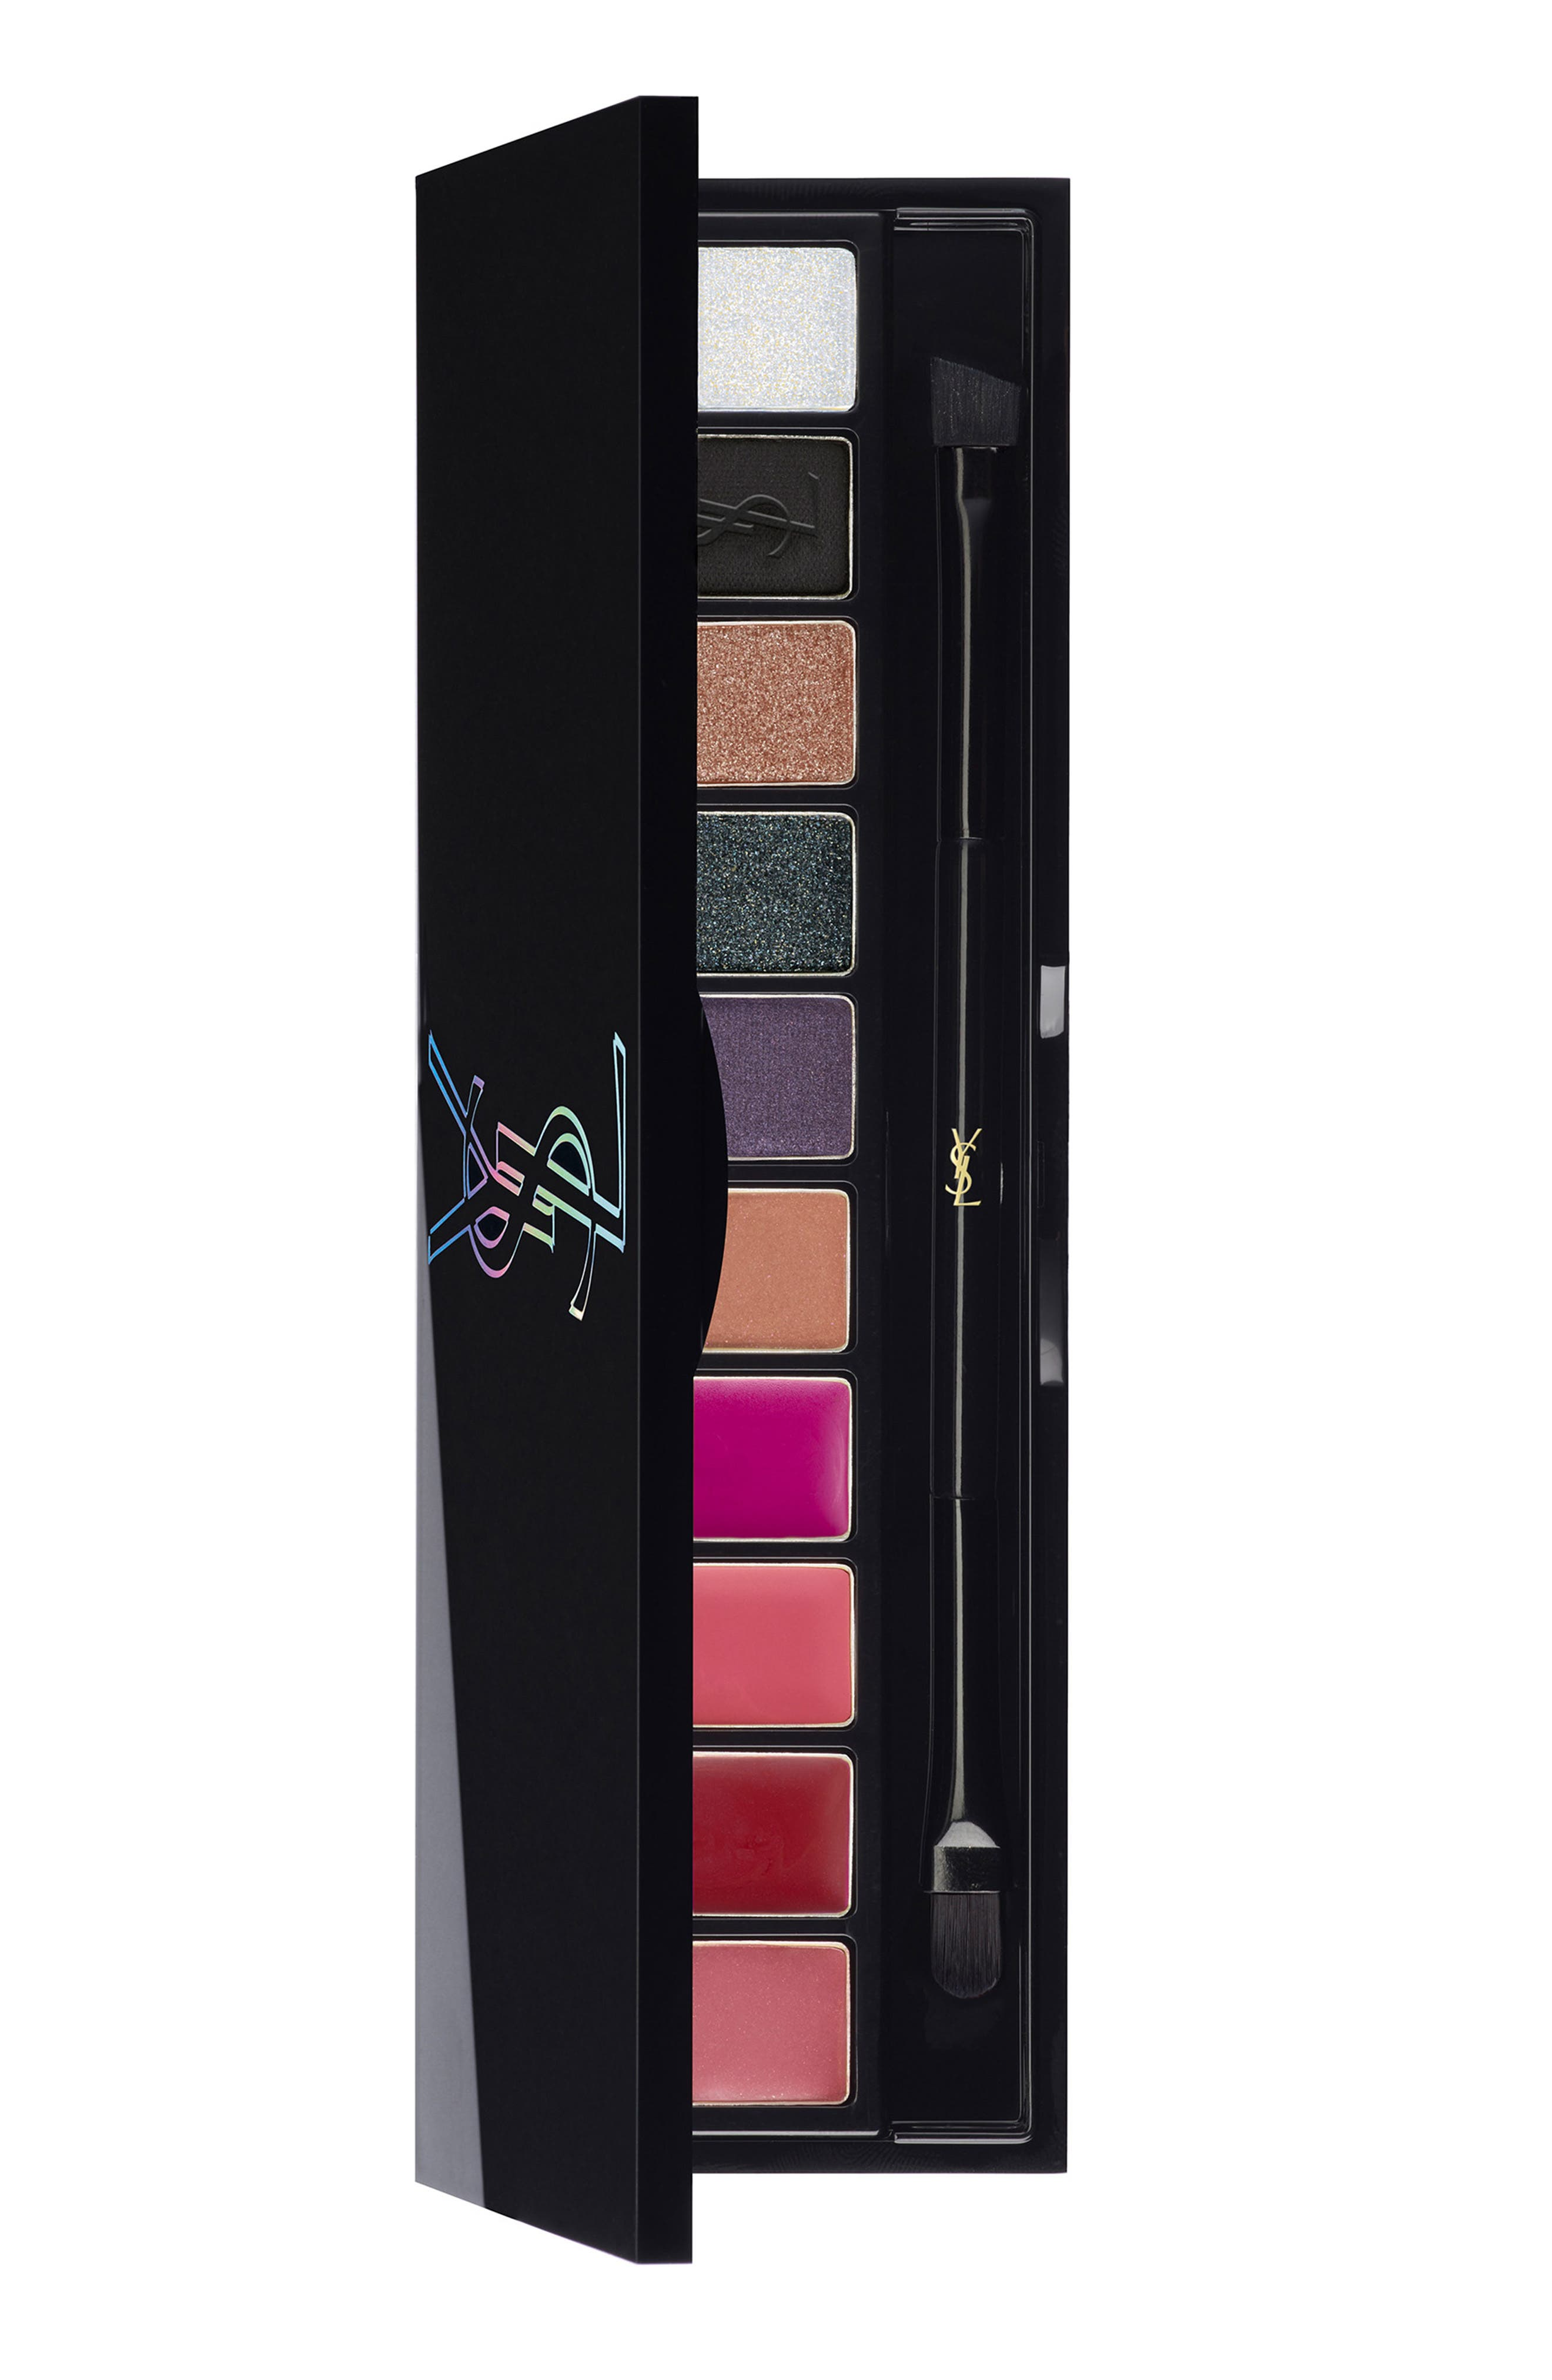 Yves Saint Laurent Night 54 Couture Variation Palette For Eyes & Lips - No Color